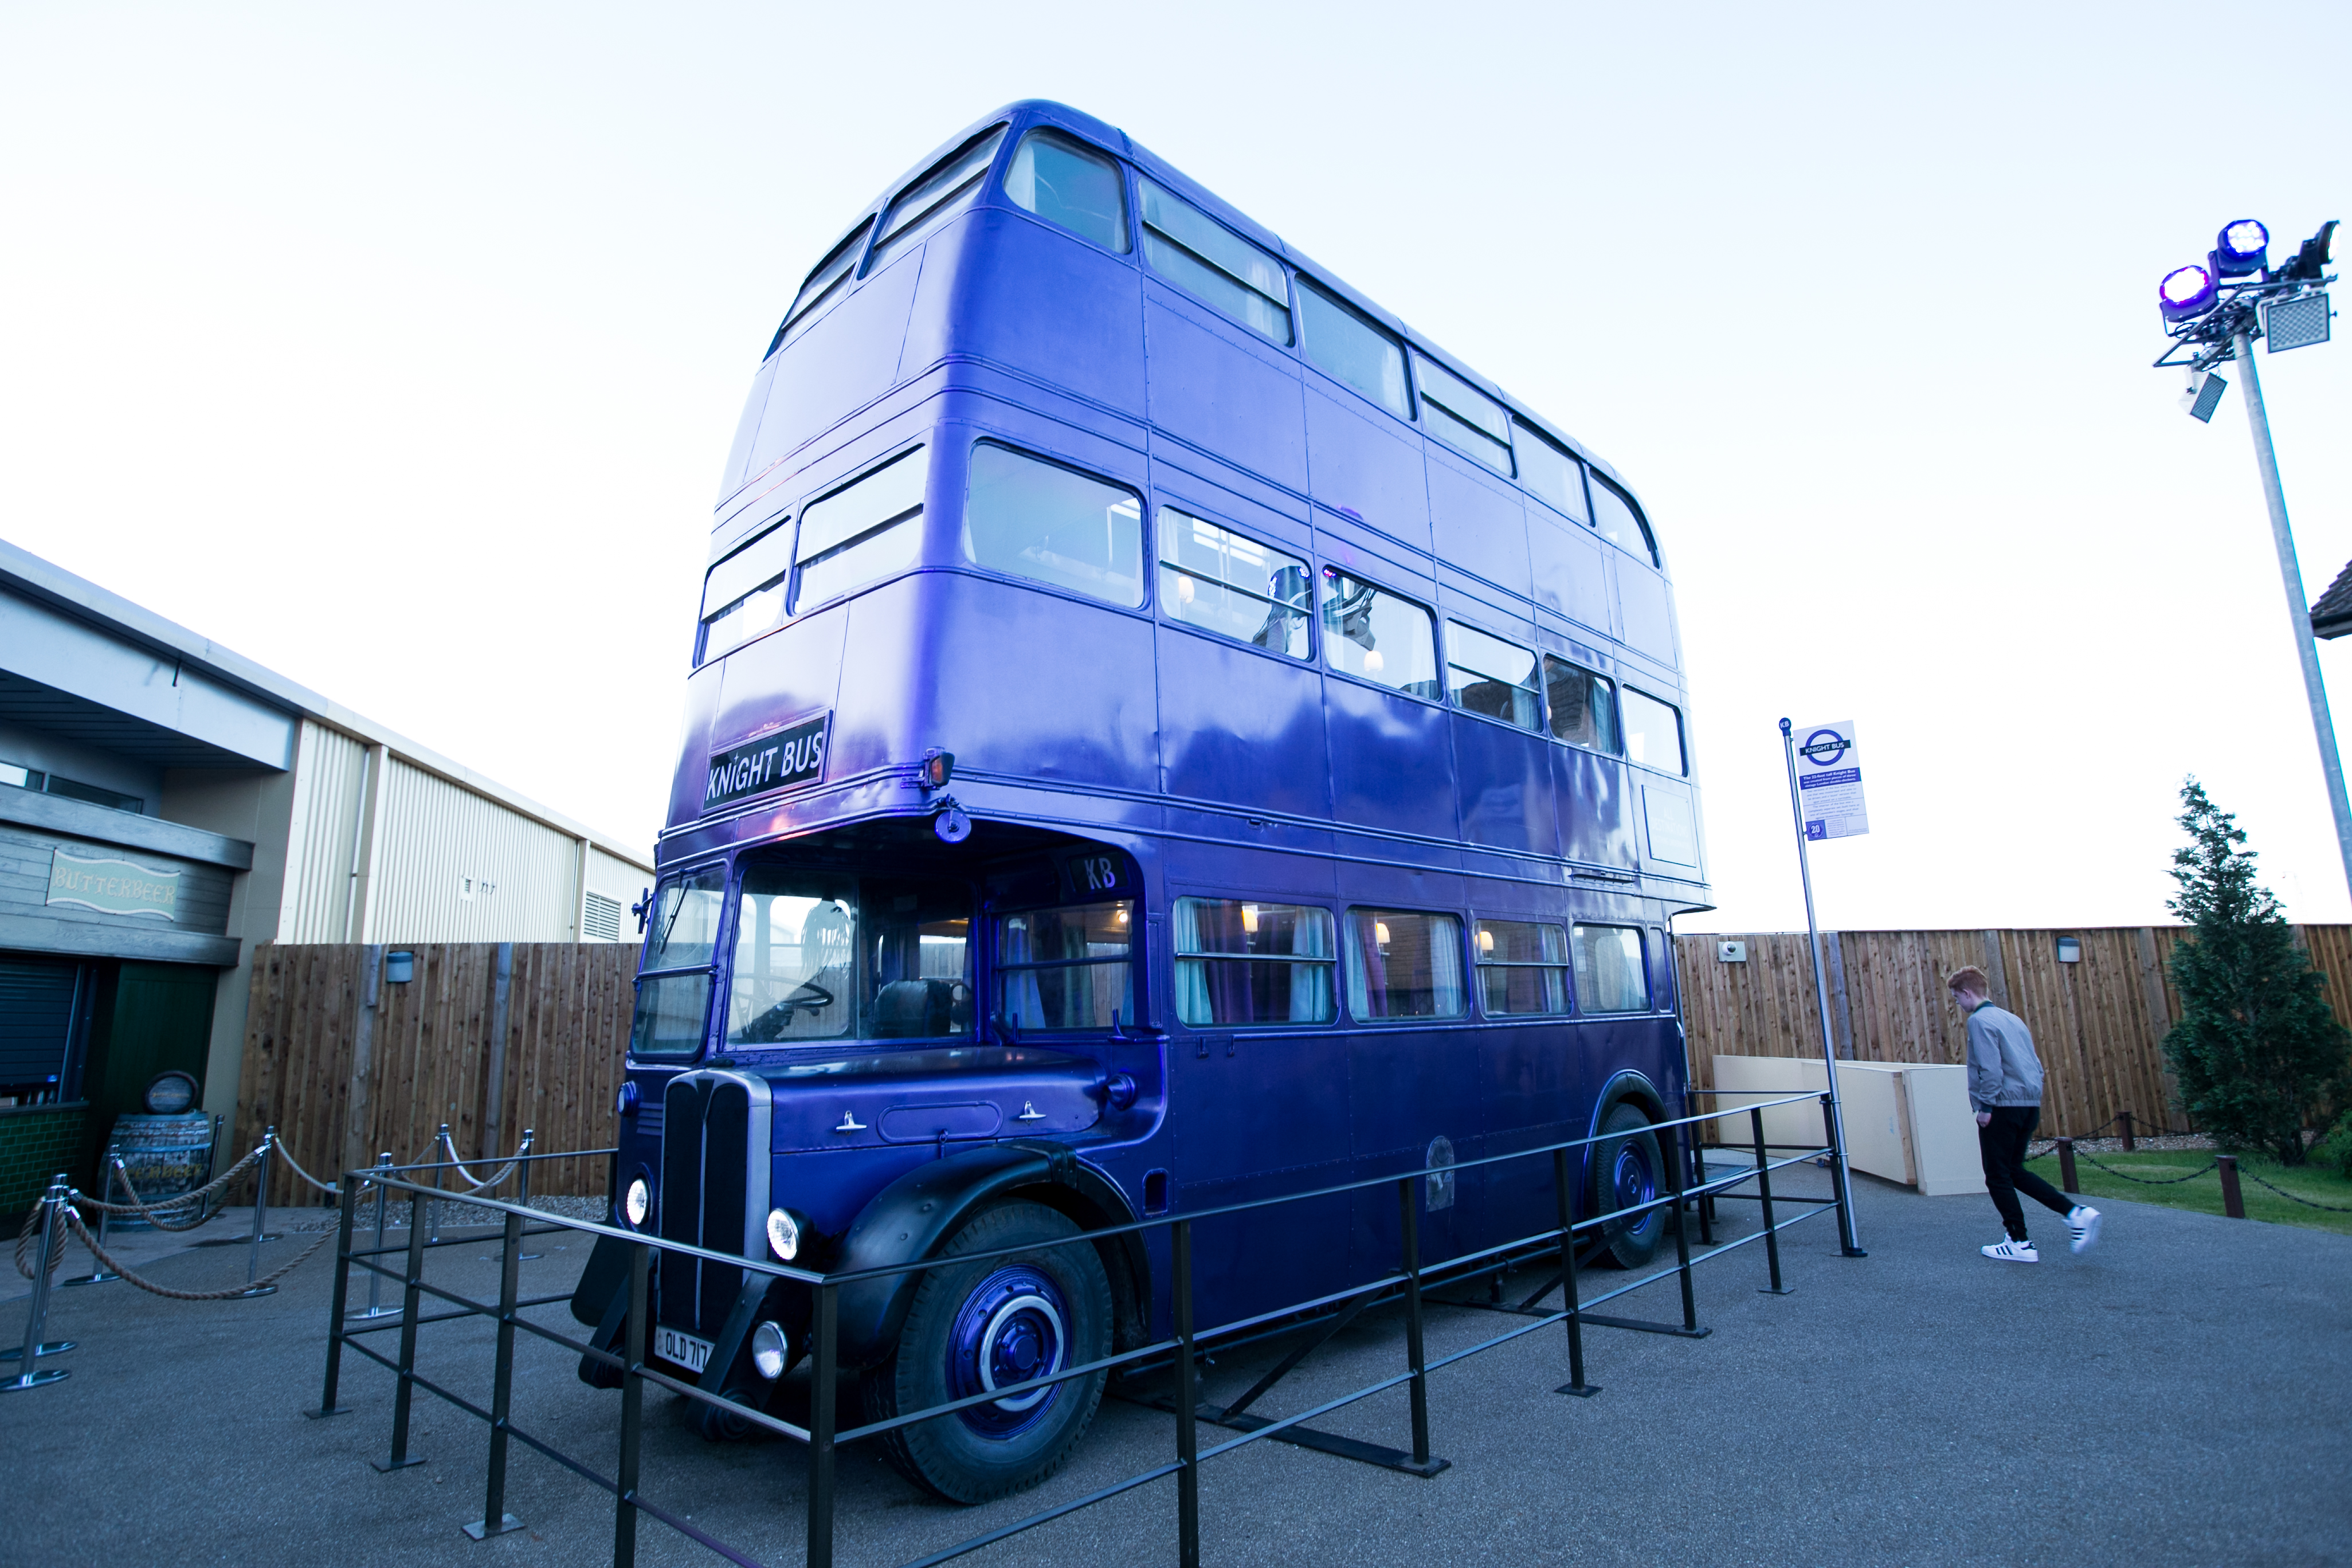 harry-potter-studio-tour-knight-bus-wide